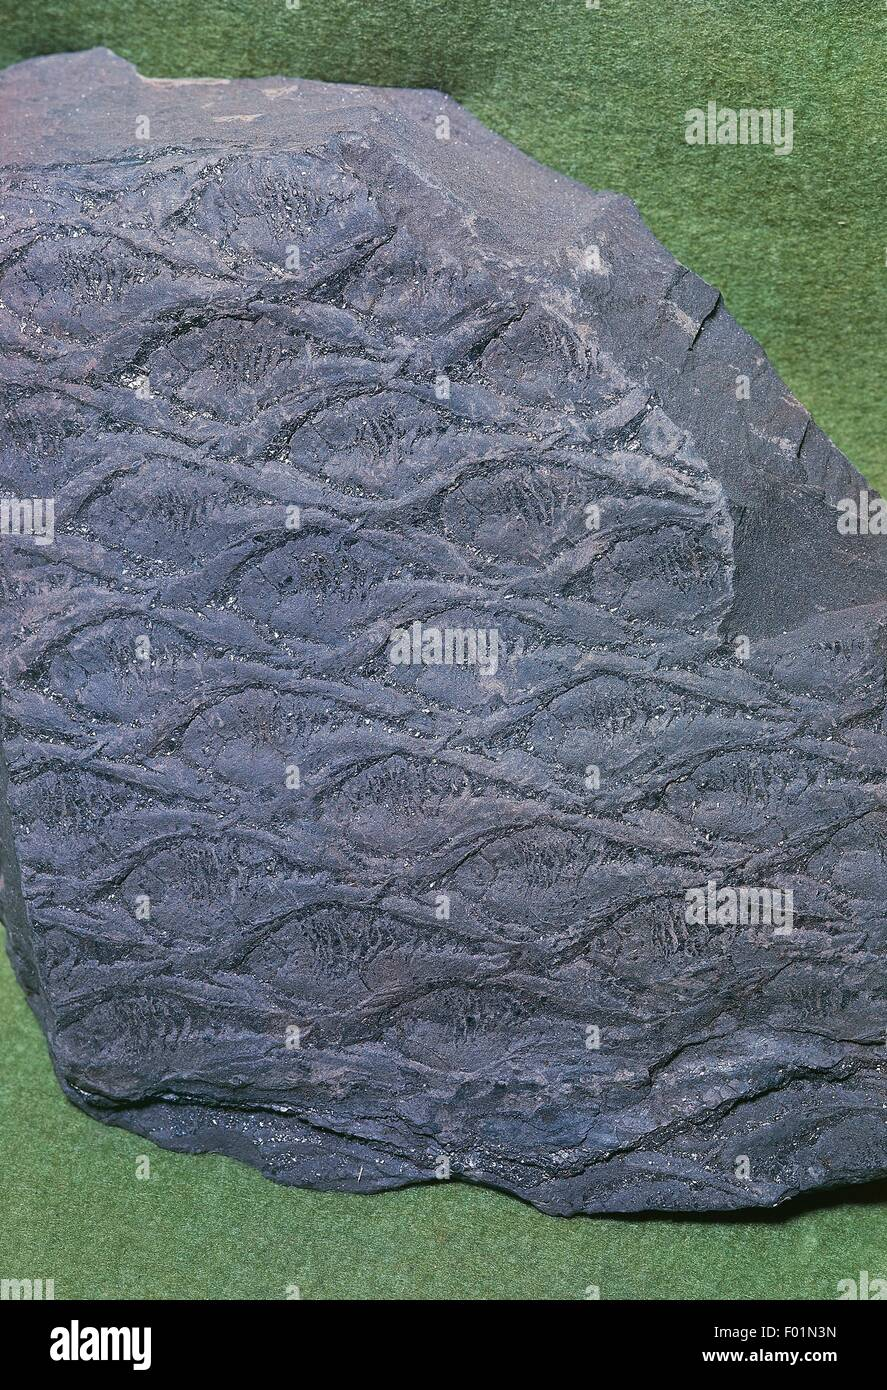 Lepidodendron sternbergii fossil, Lepidodendraceae, Visean, Carboniferous. Stock Photo